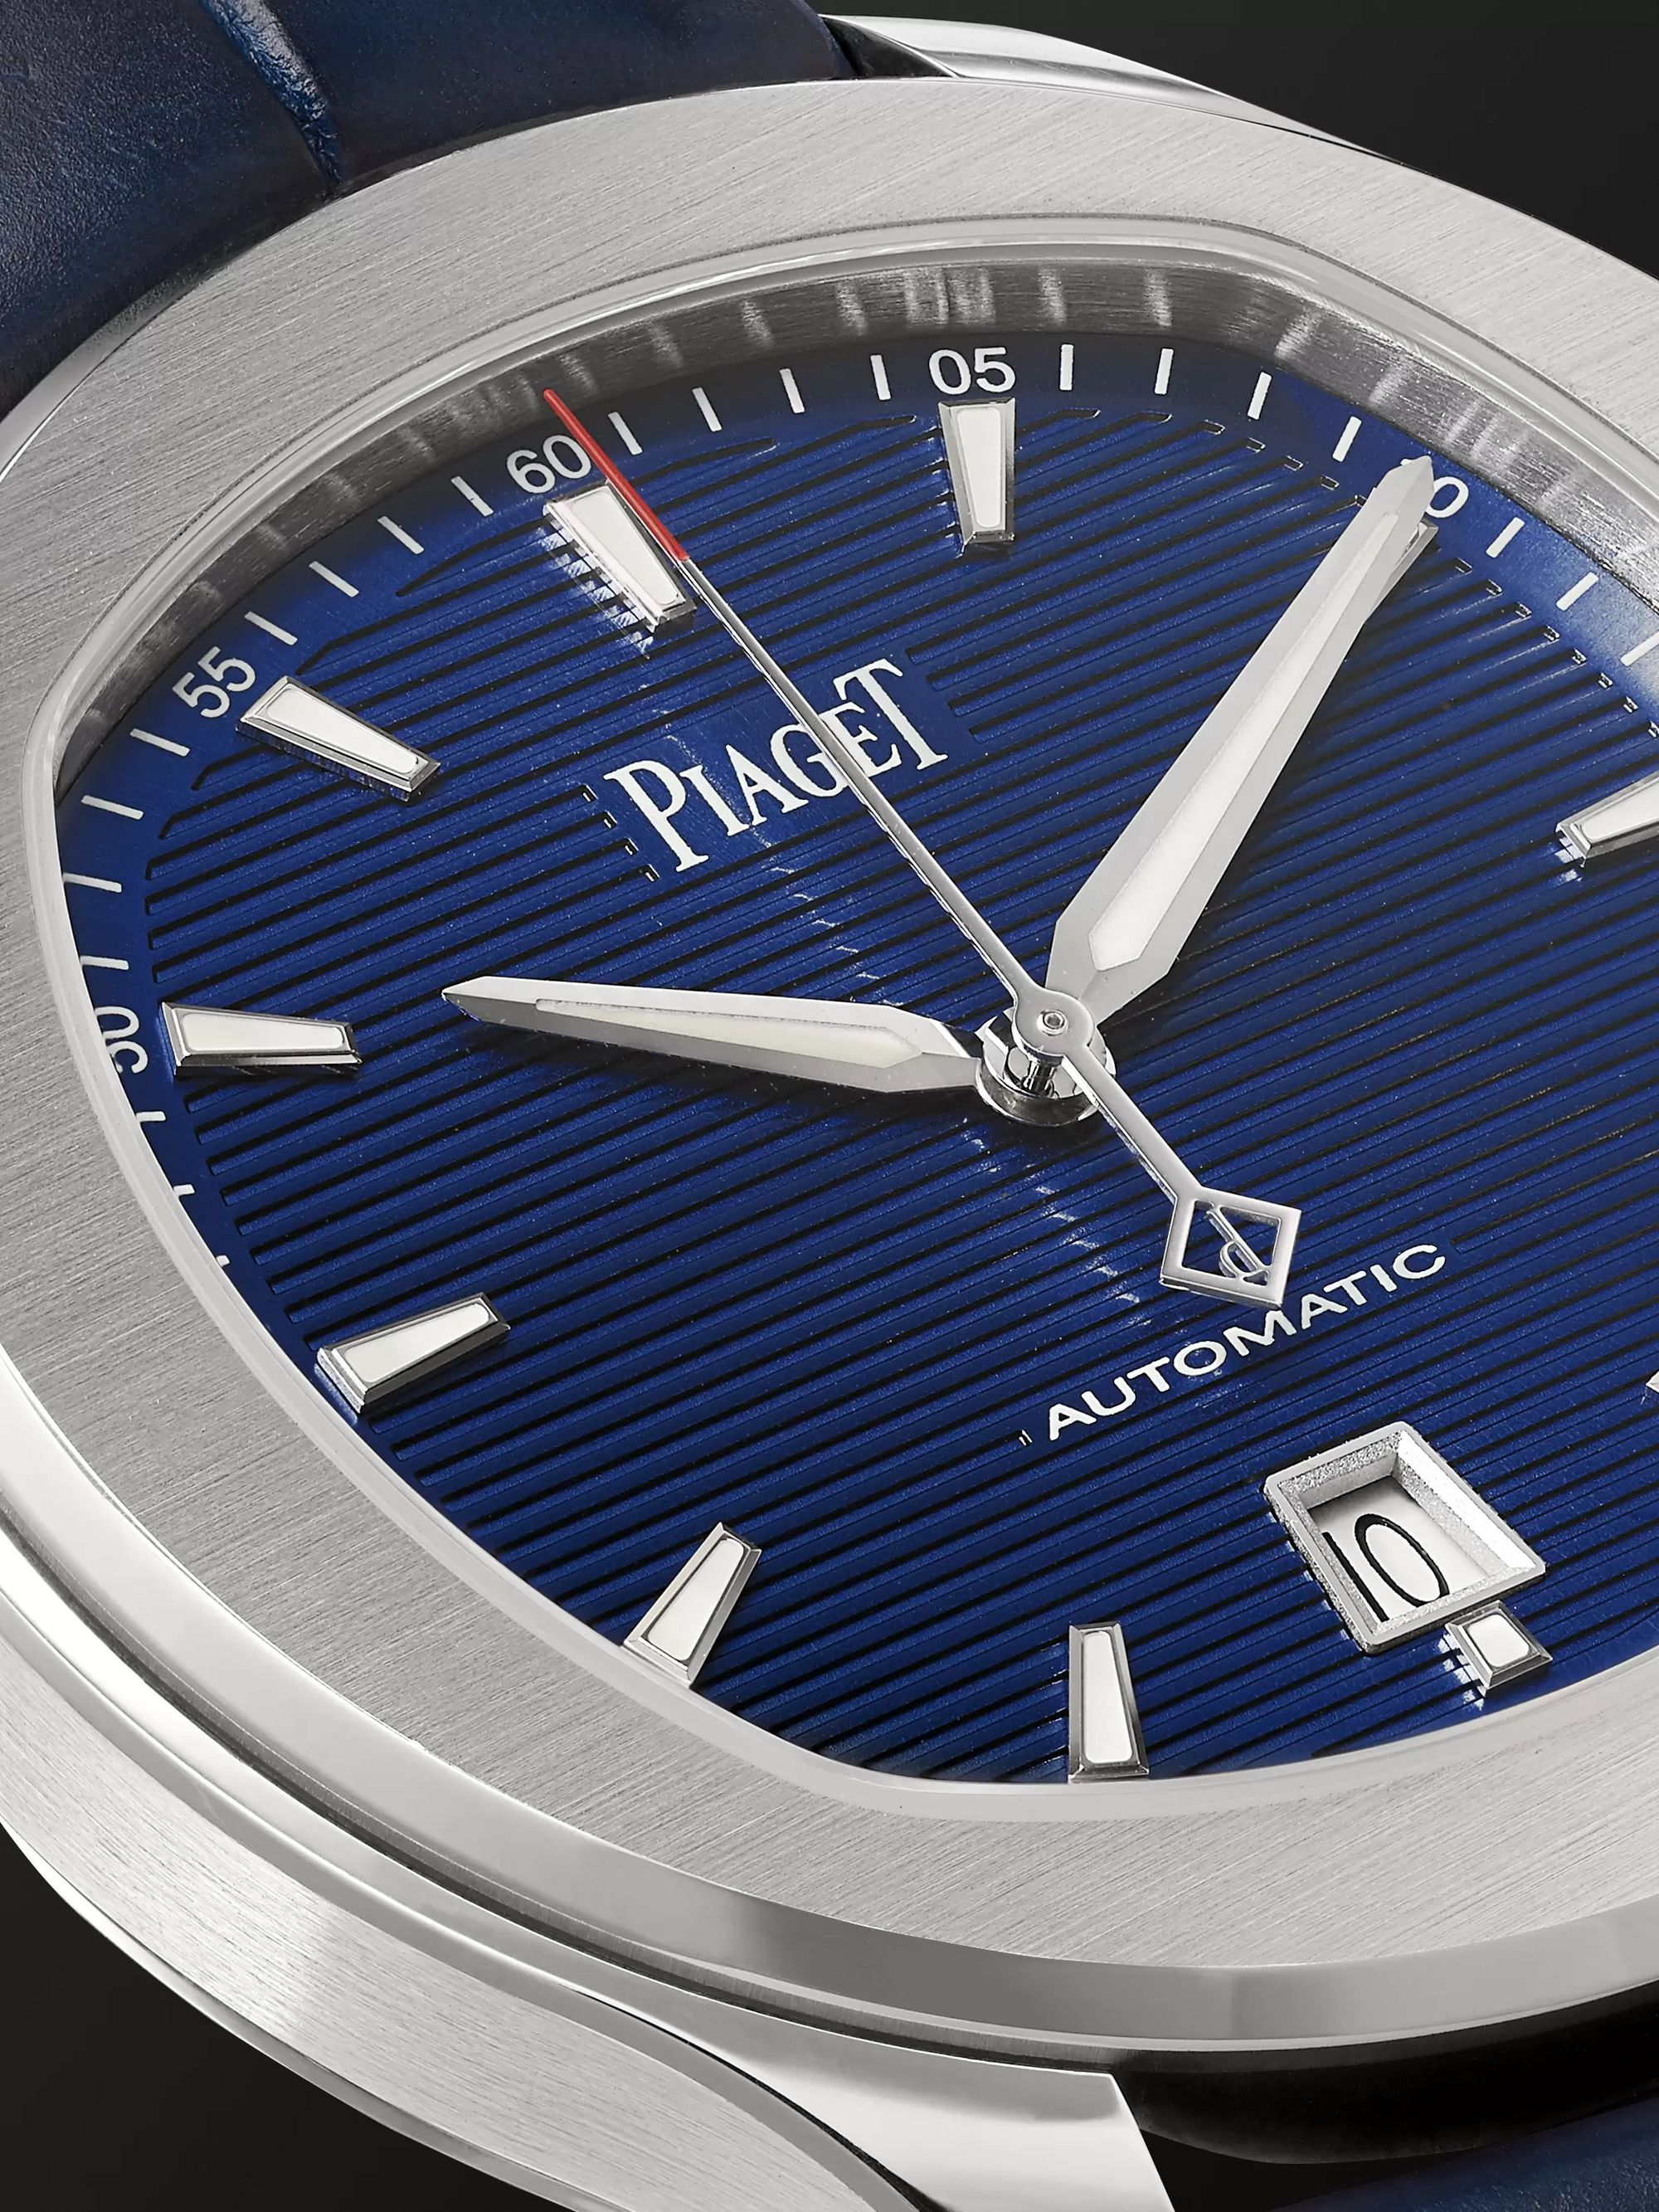 Piaget Polo S 42mm Stainless Steel and Alligator Watch, Ref. No. G0A43001